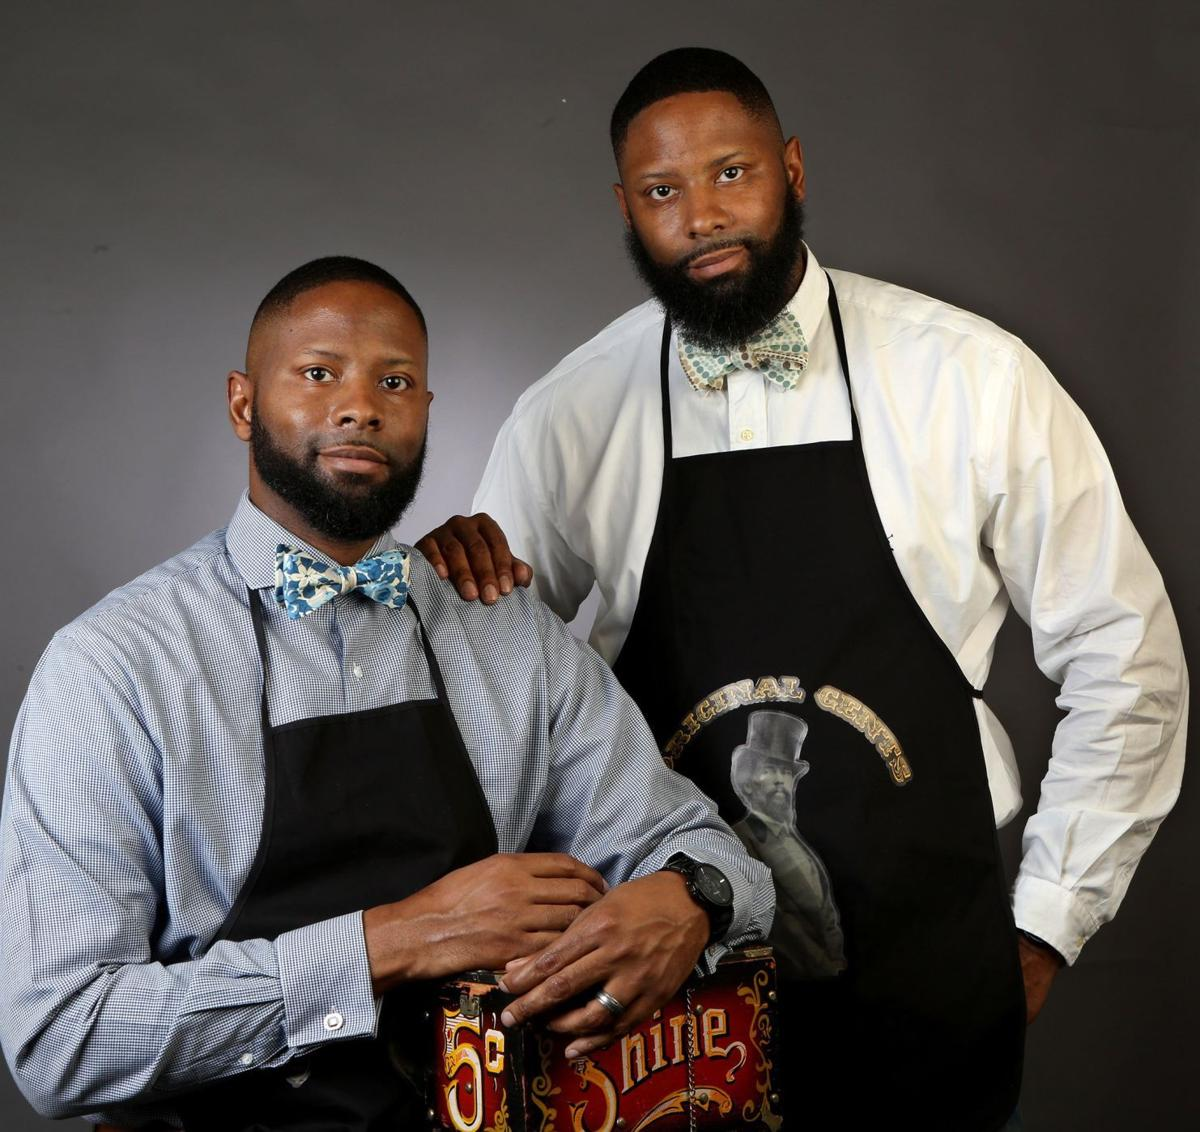 made in st louis original gents twins use local ingredients in beard care line fashion. Black Bedroom Furniture Sets. Home Design Ideas